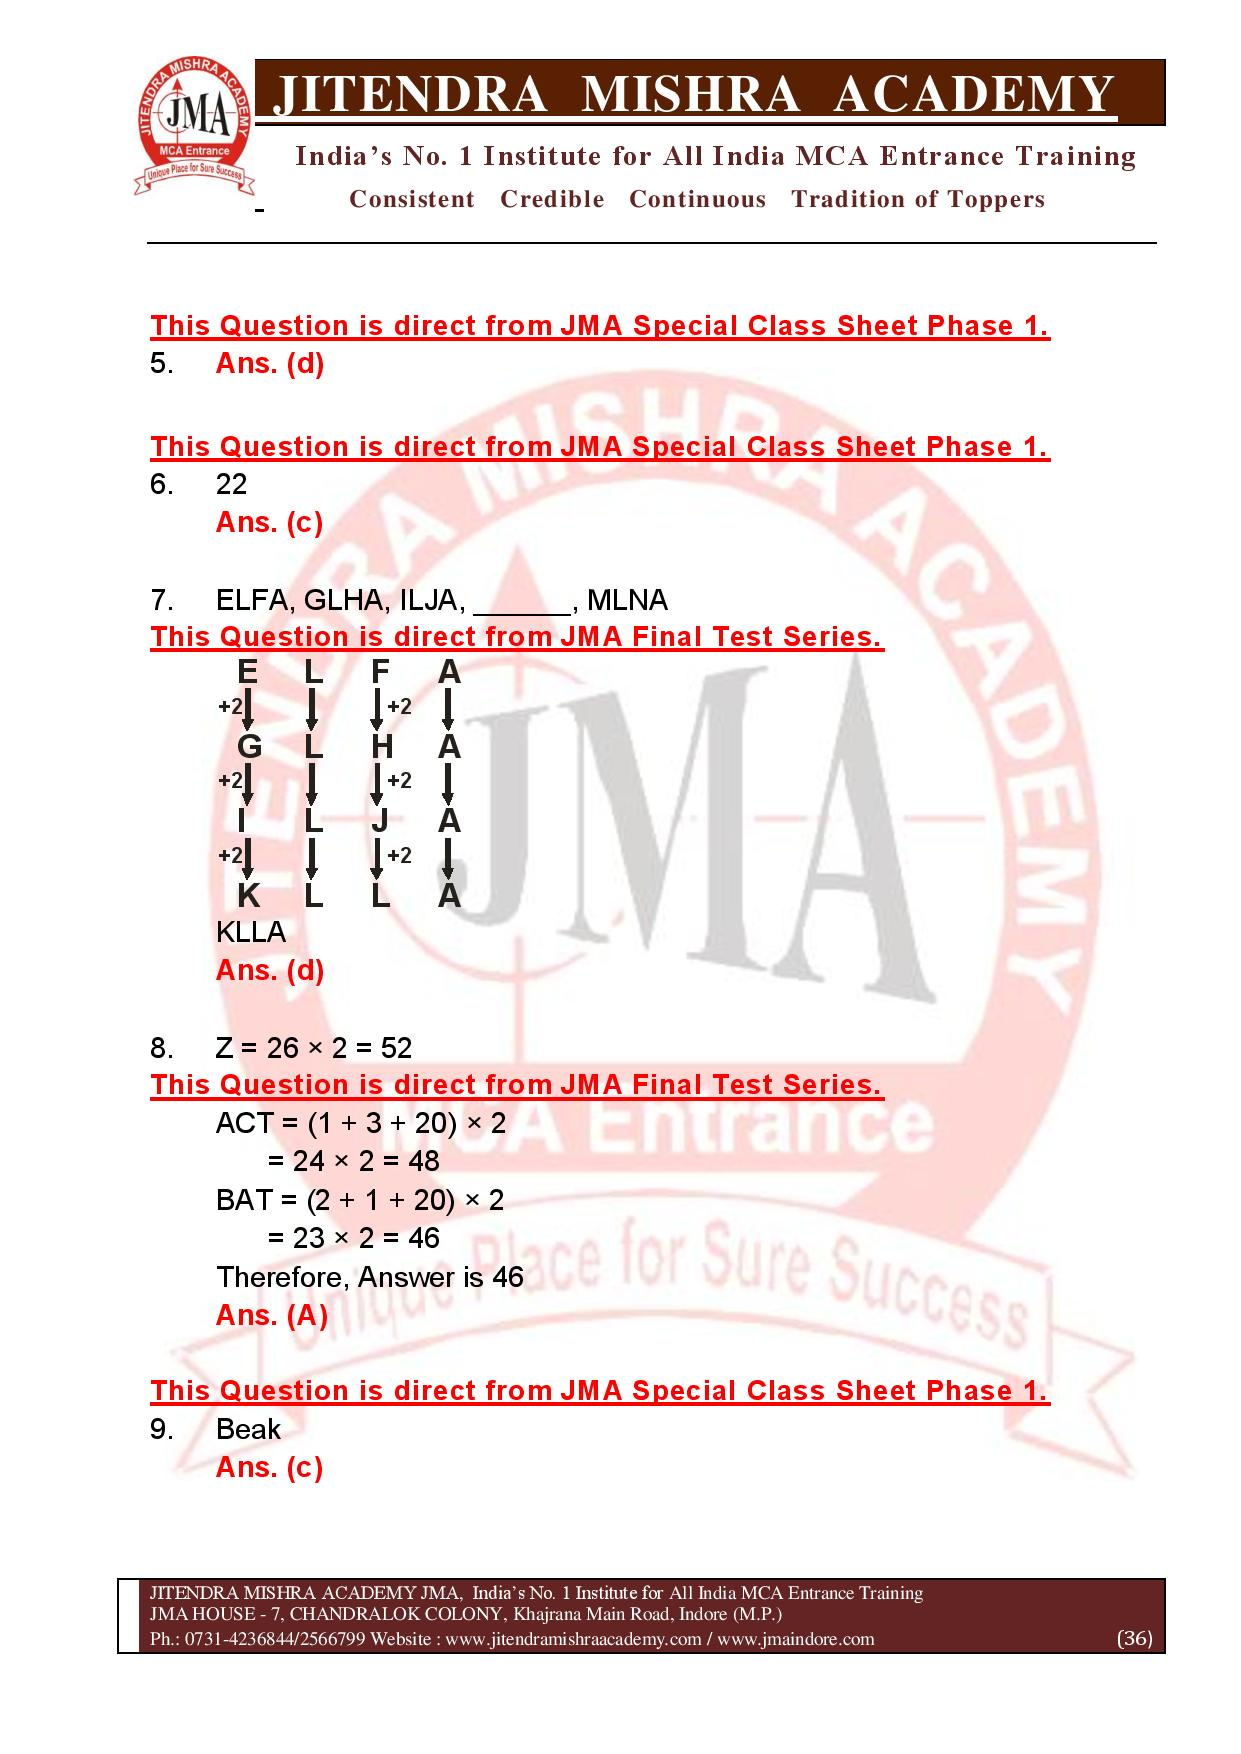 NIMCET 2021 SOLUTION.(F)docx-page-036